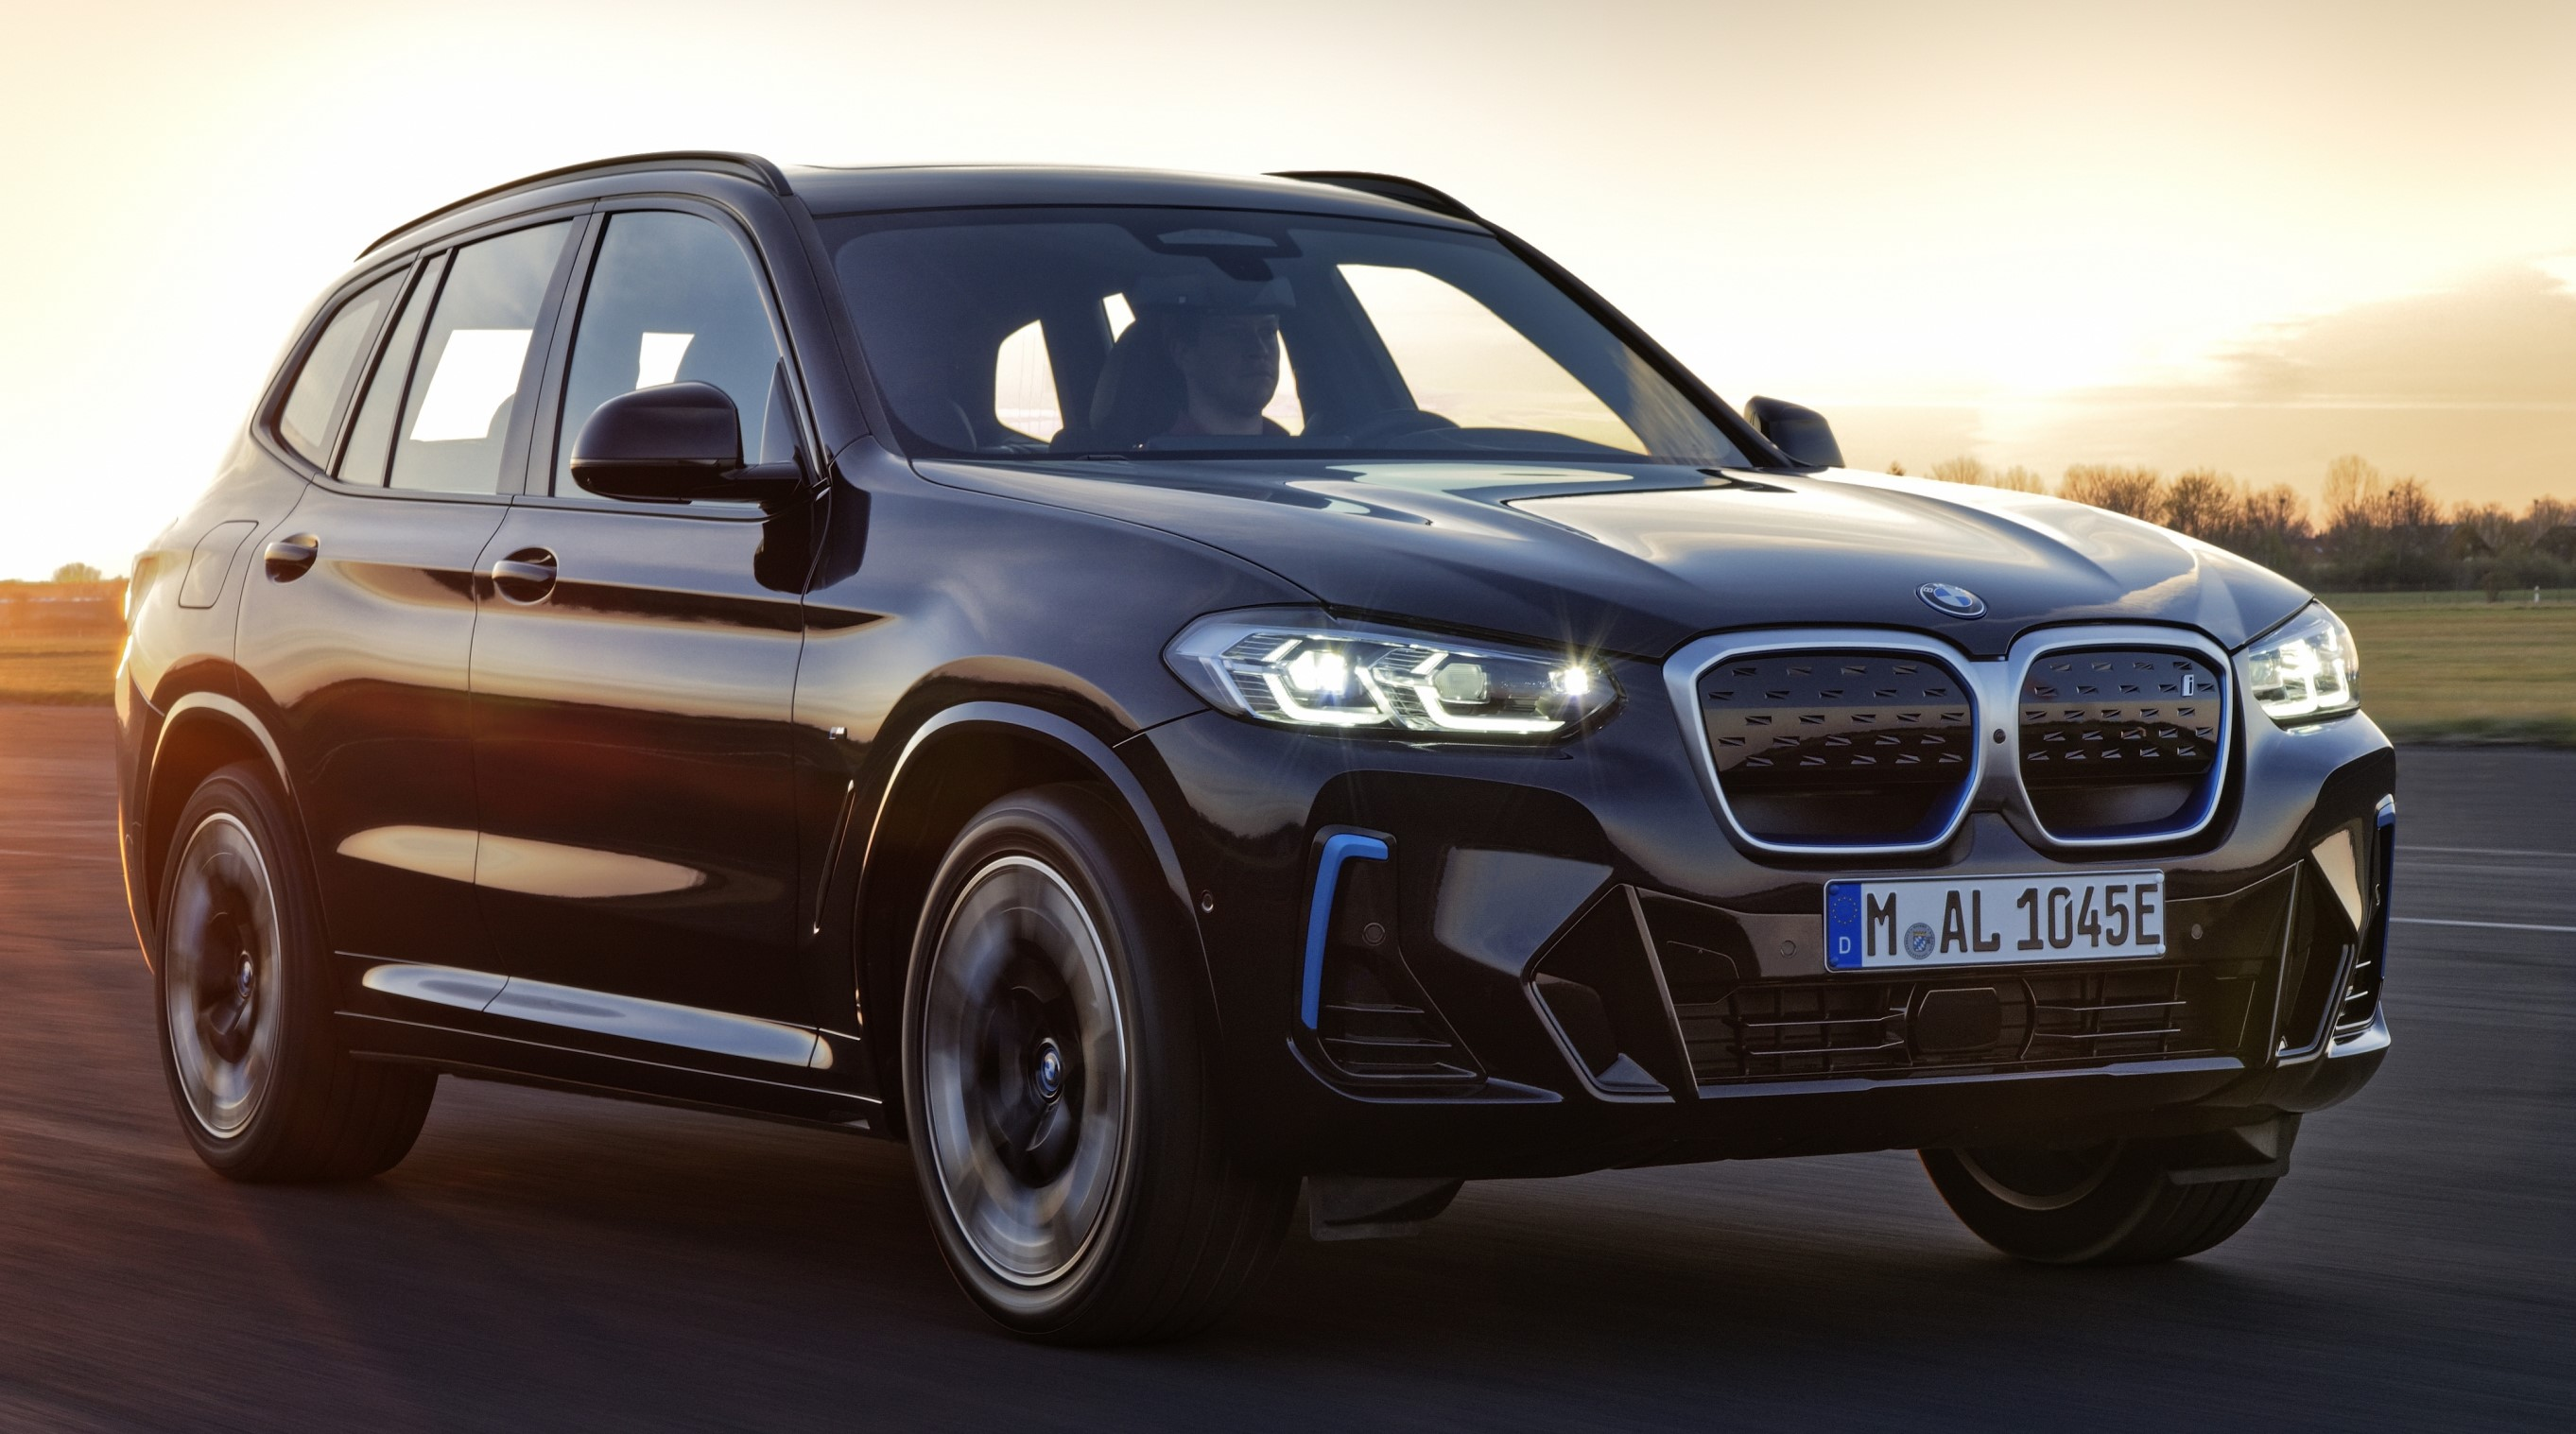 BMW iX3 gets a refresh to boost its qualities